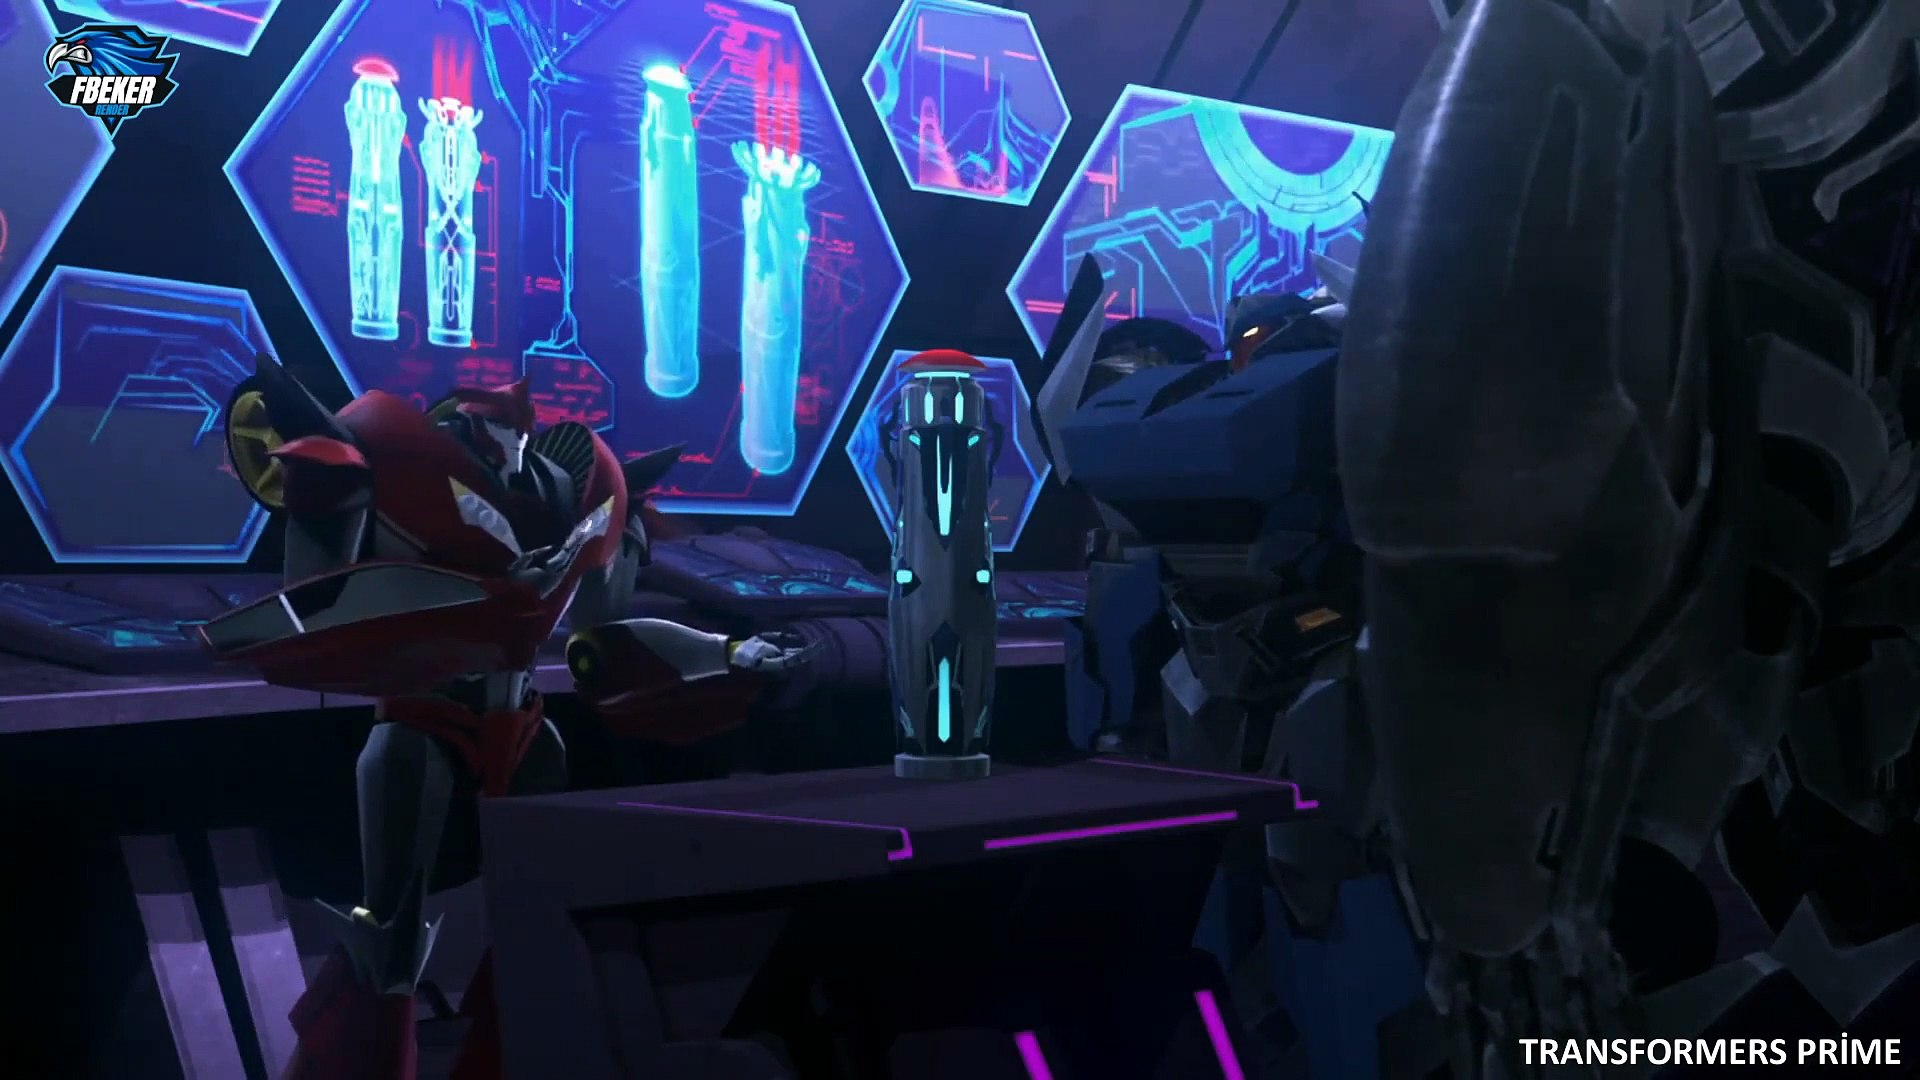 Transformers Prime 21.Bölüm Full Hd